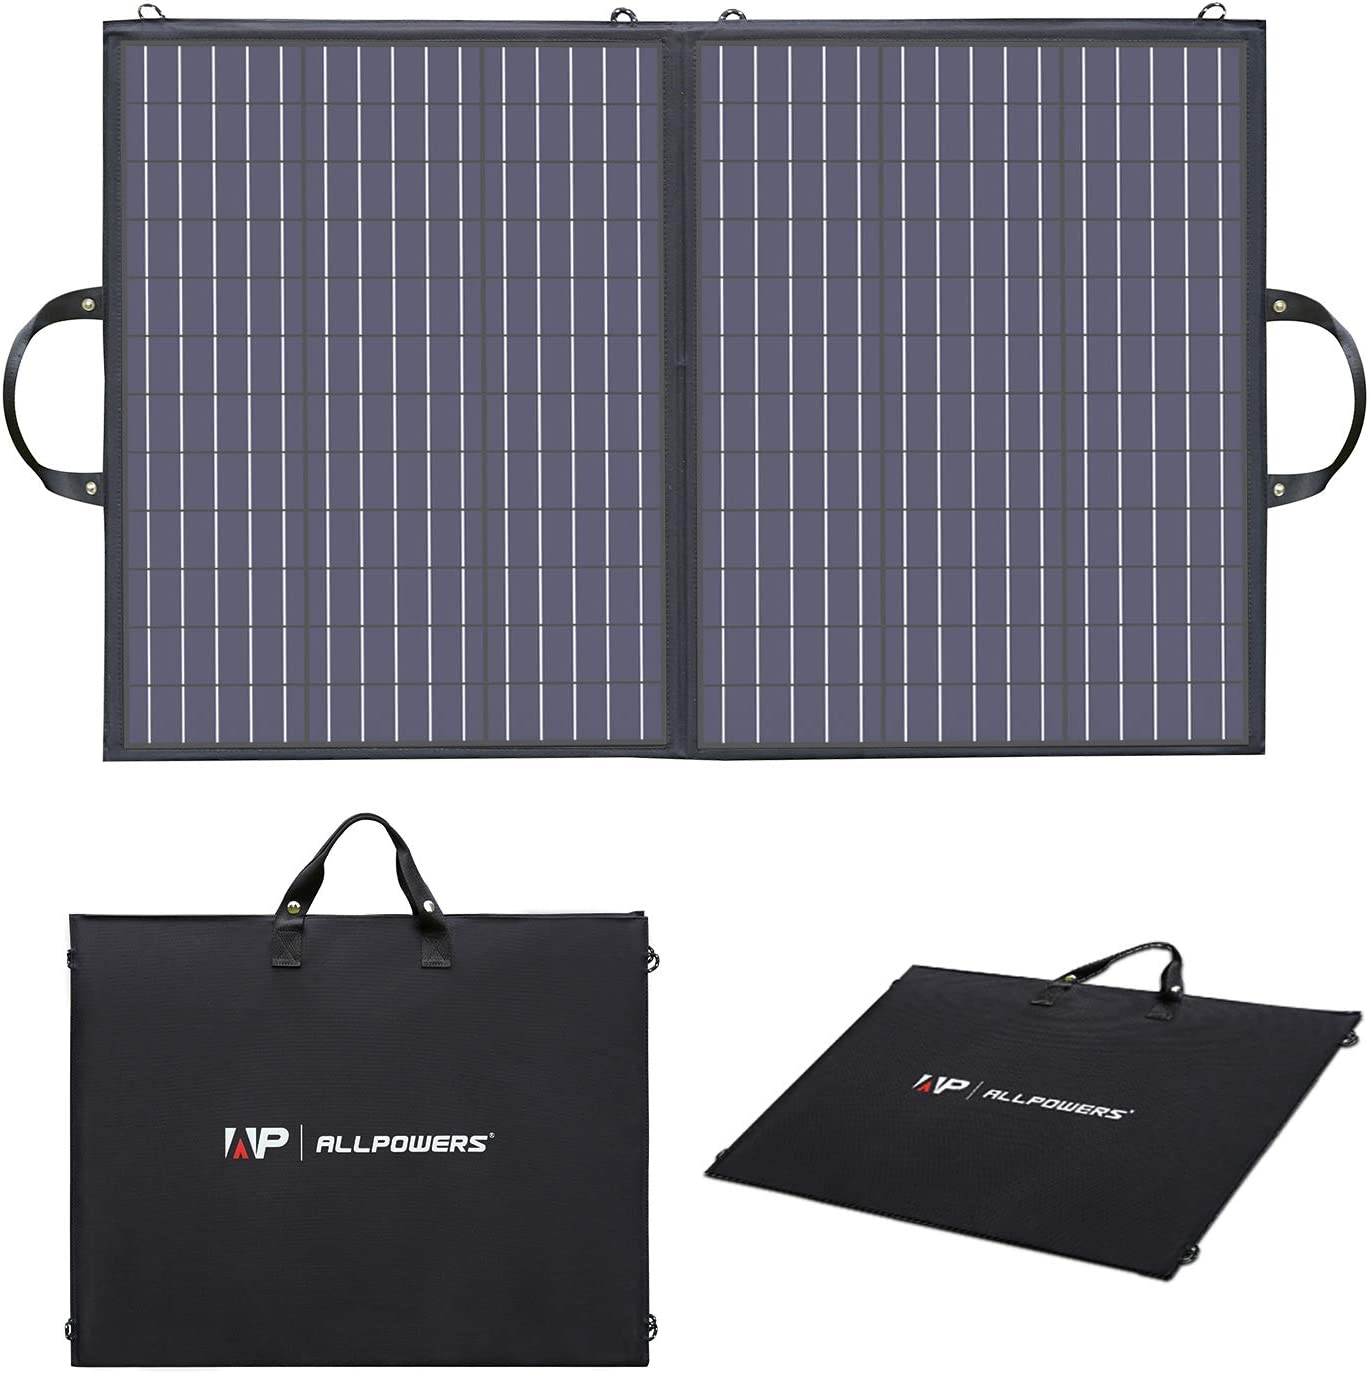 ALLPOWERS 100W Portable Solar Panel Charger for Laptops, Foldable US Solar Cell Solar Charger with MC4 Output for Most Portable Generator Power Station